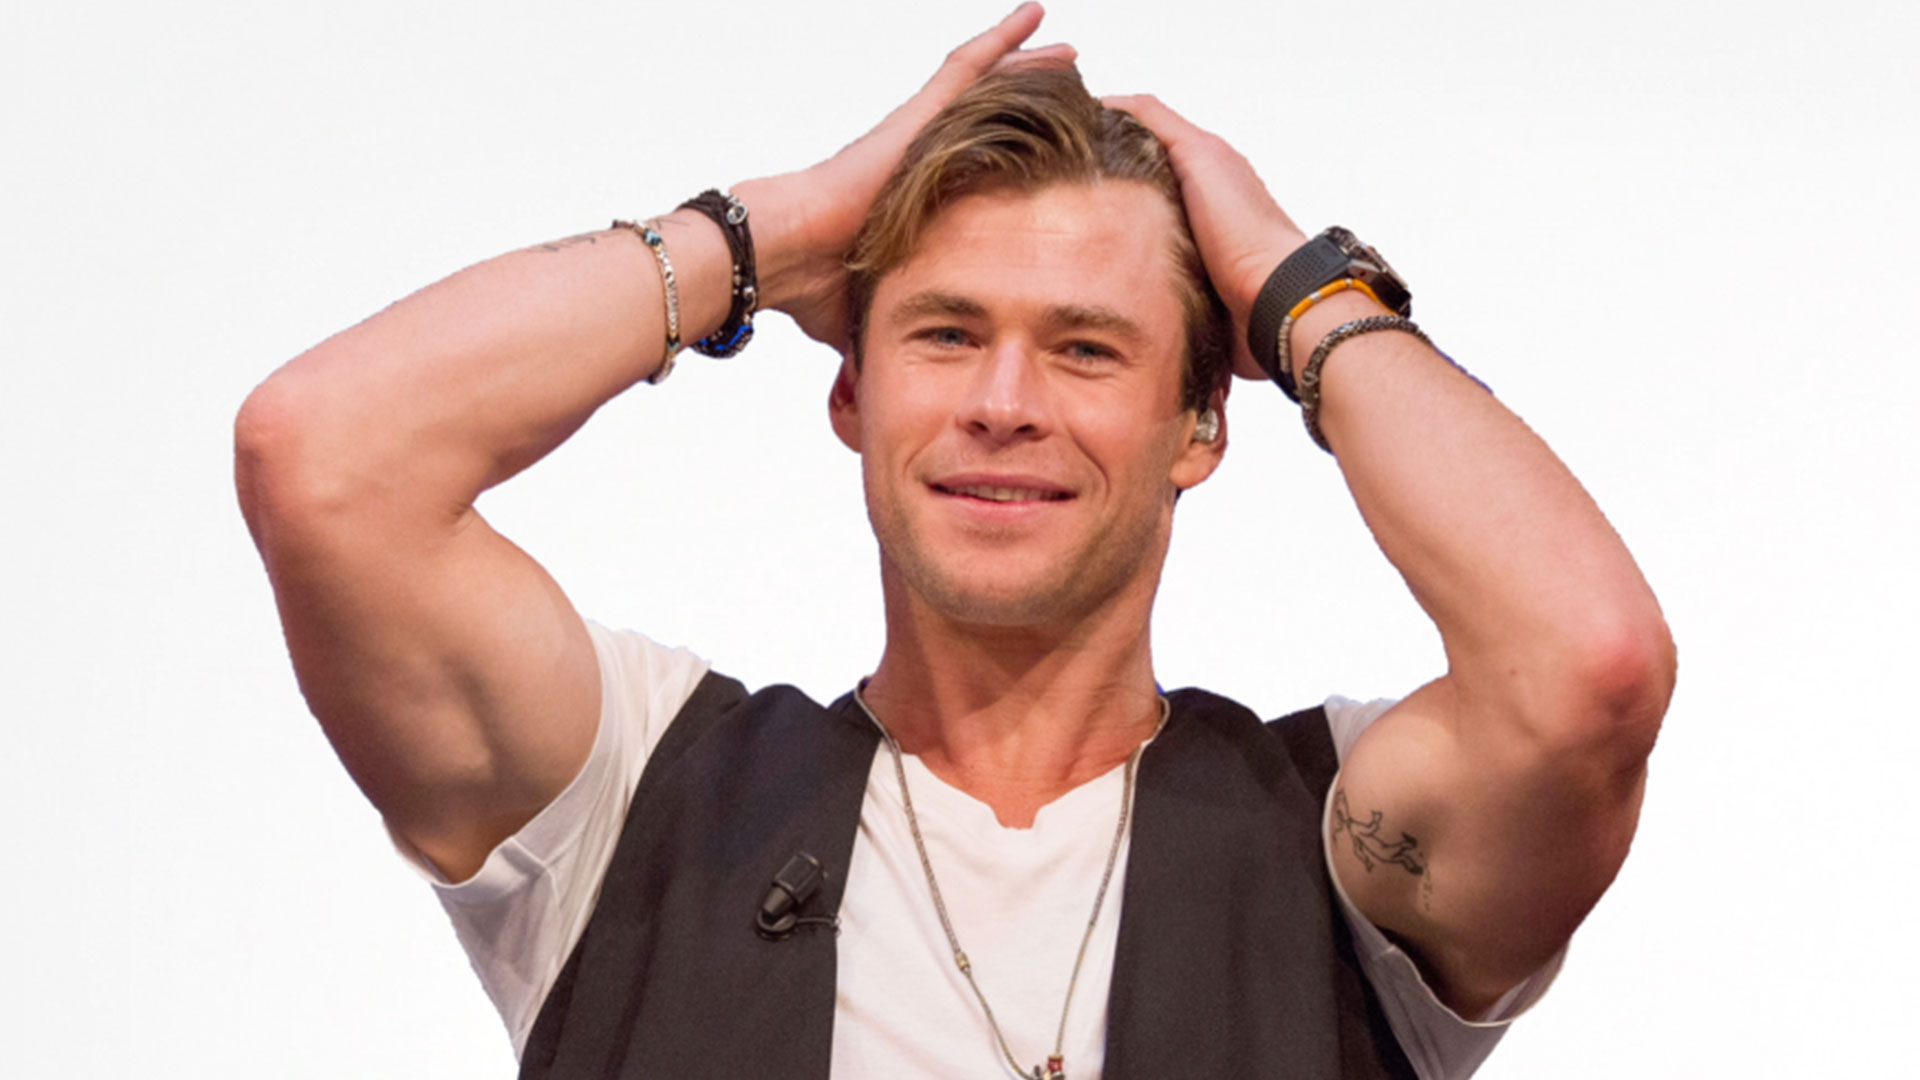 Biography Presents: Chris Hemsworth